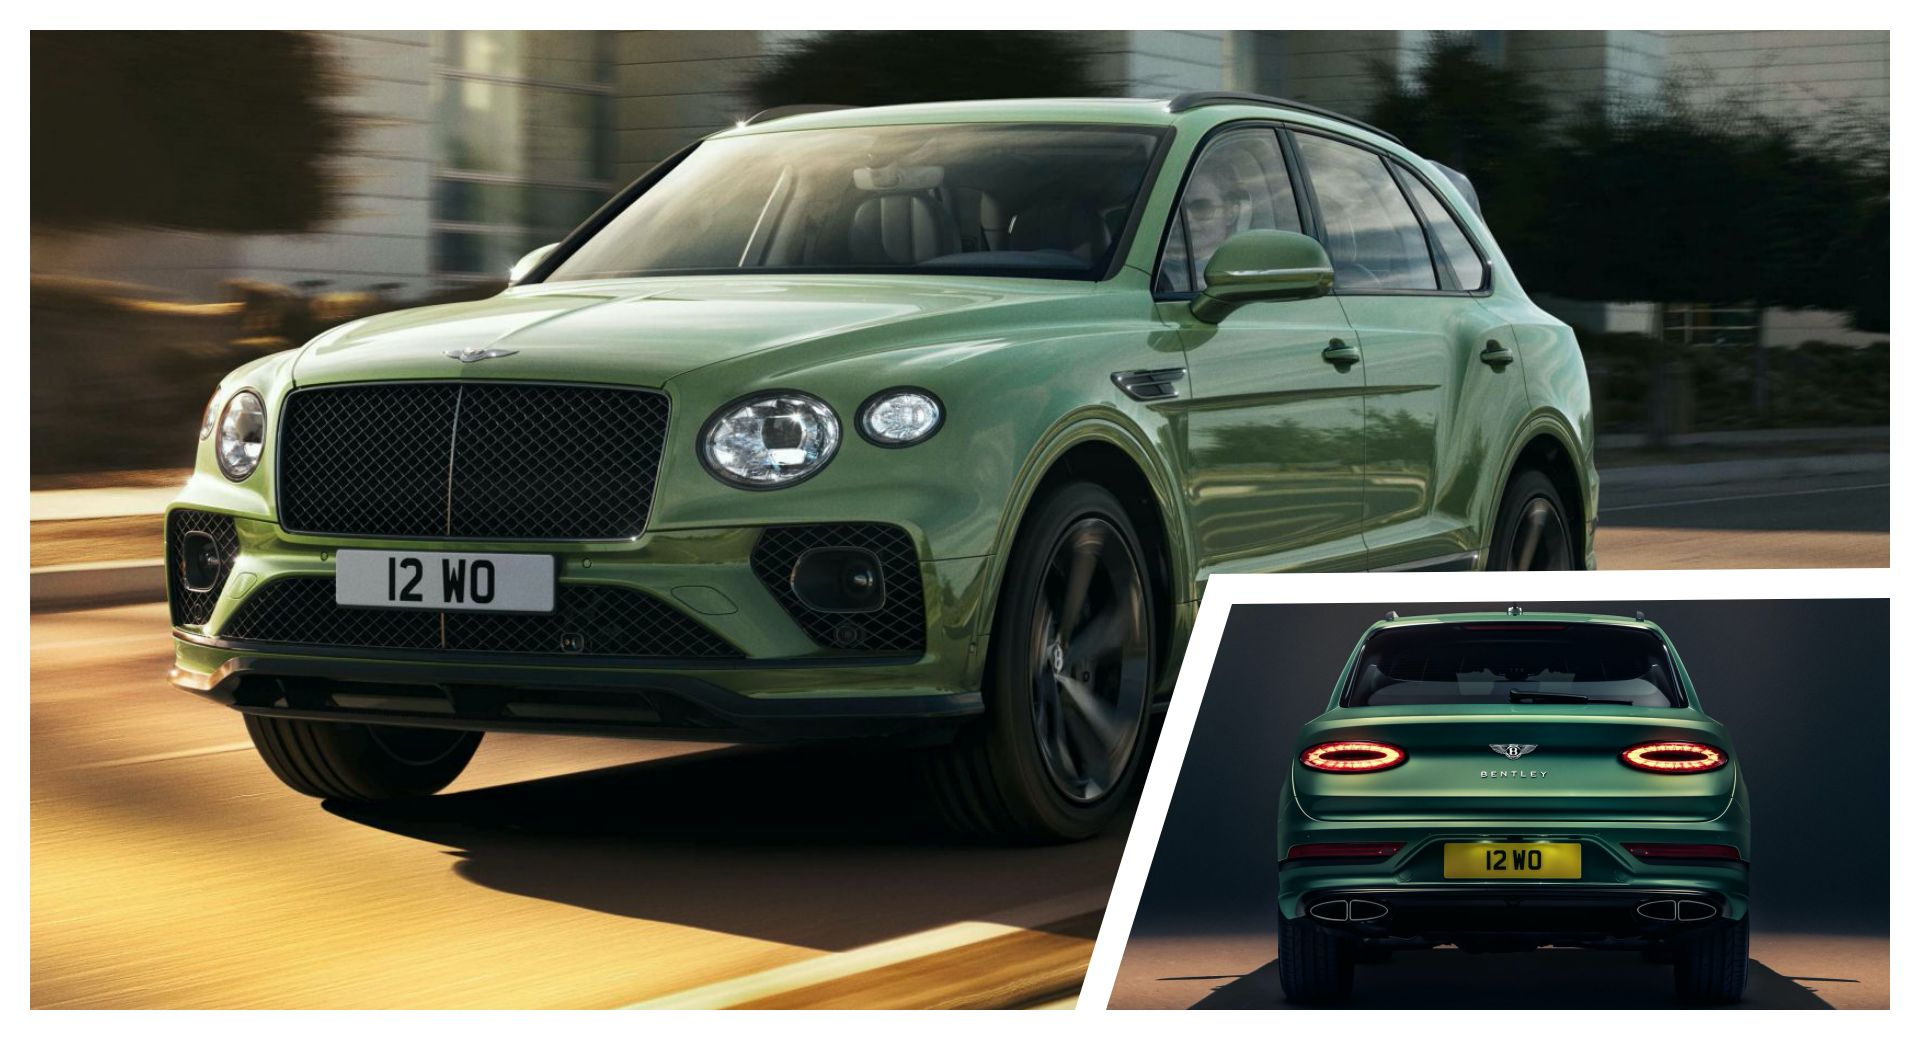 Facelifted 2021 Bentley Bentayga Adds Refinement Tech And Continental Gt Taillights Carscoops